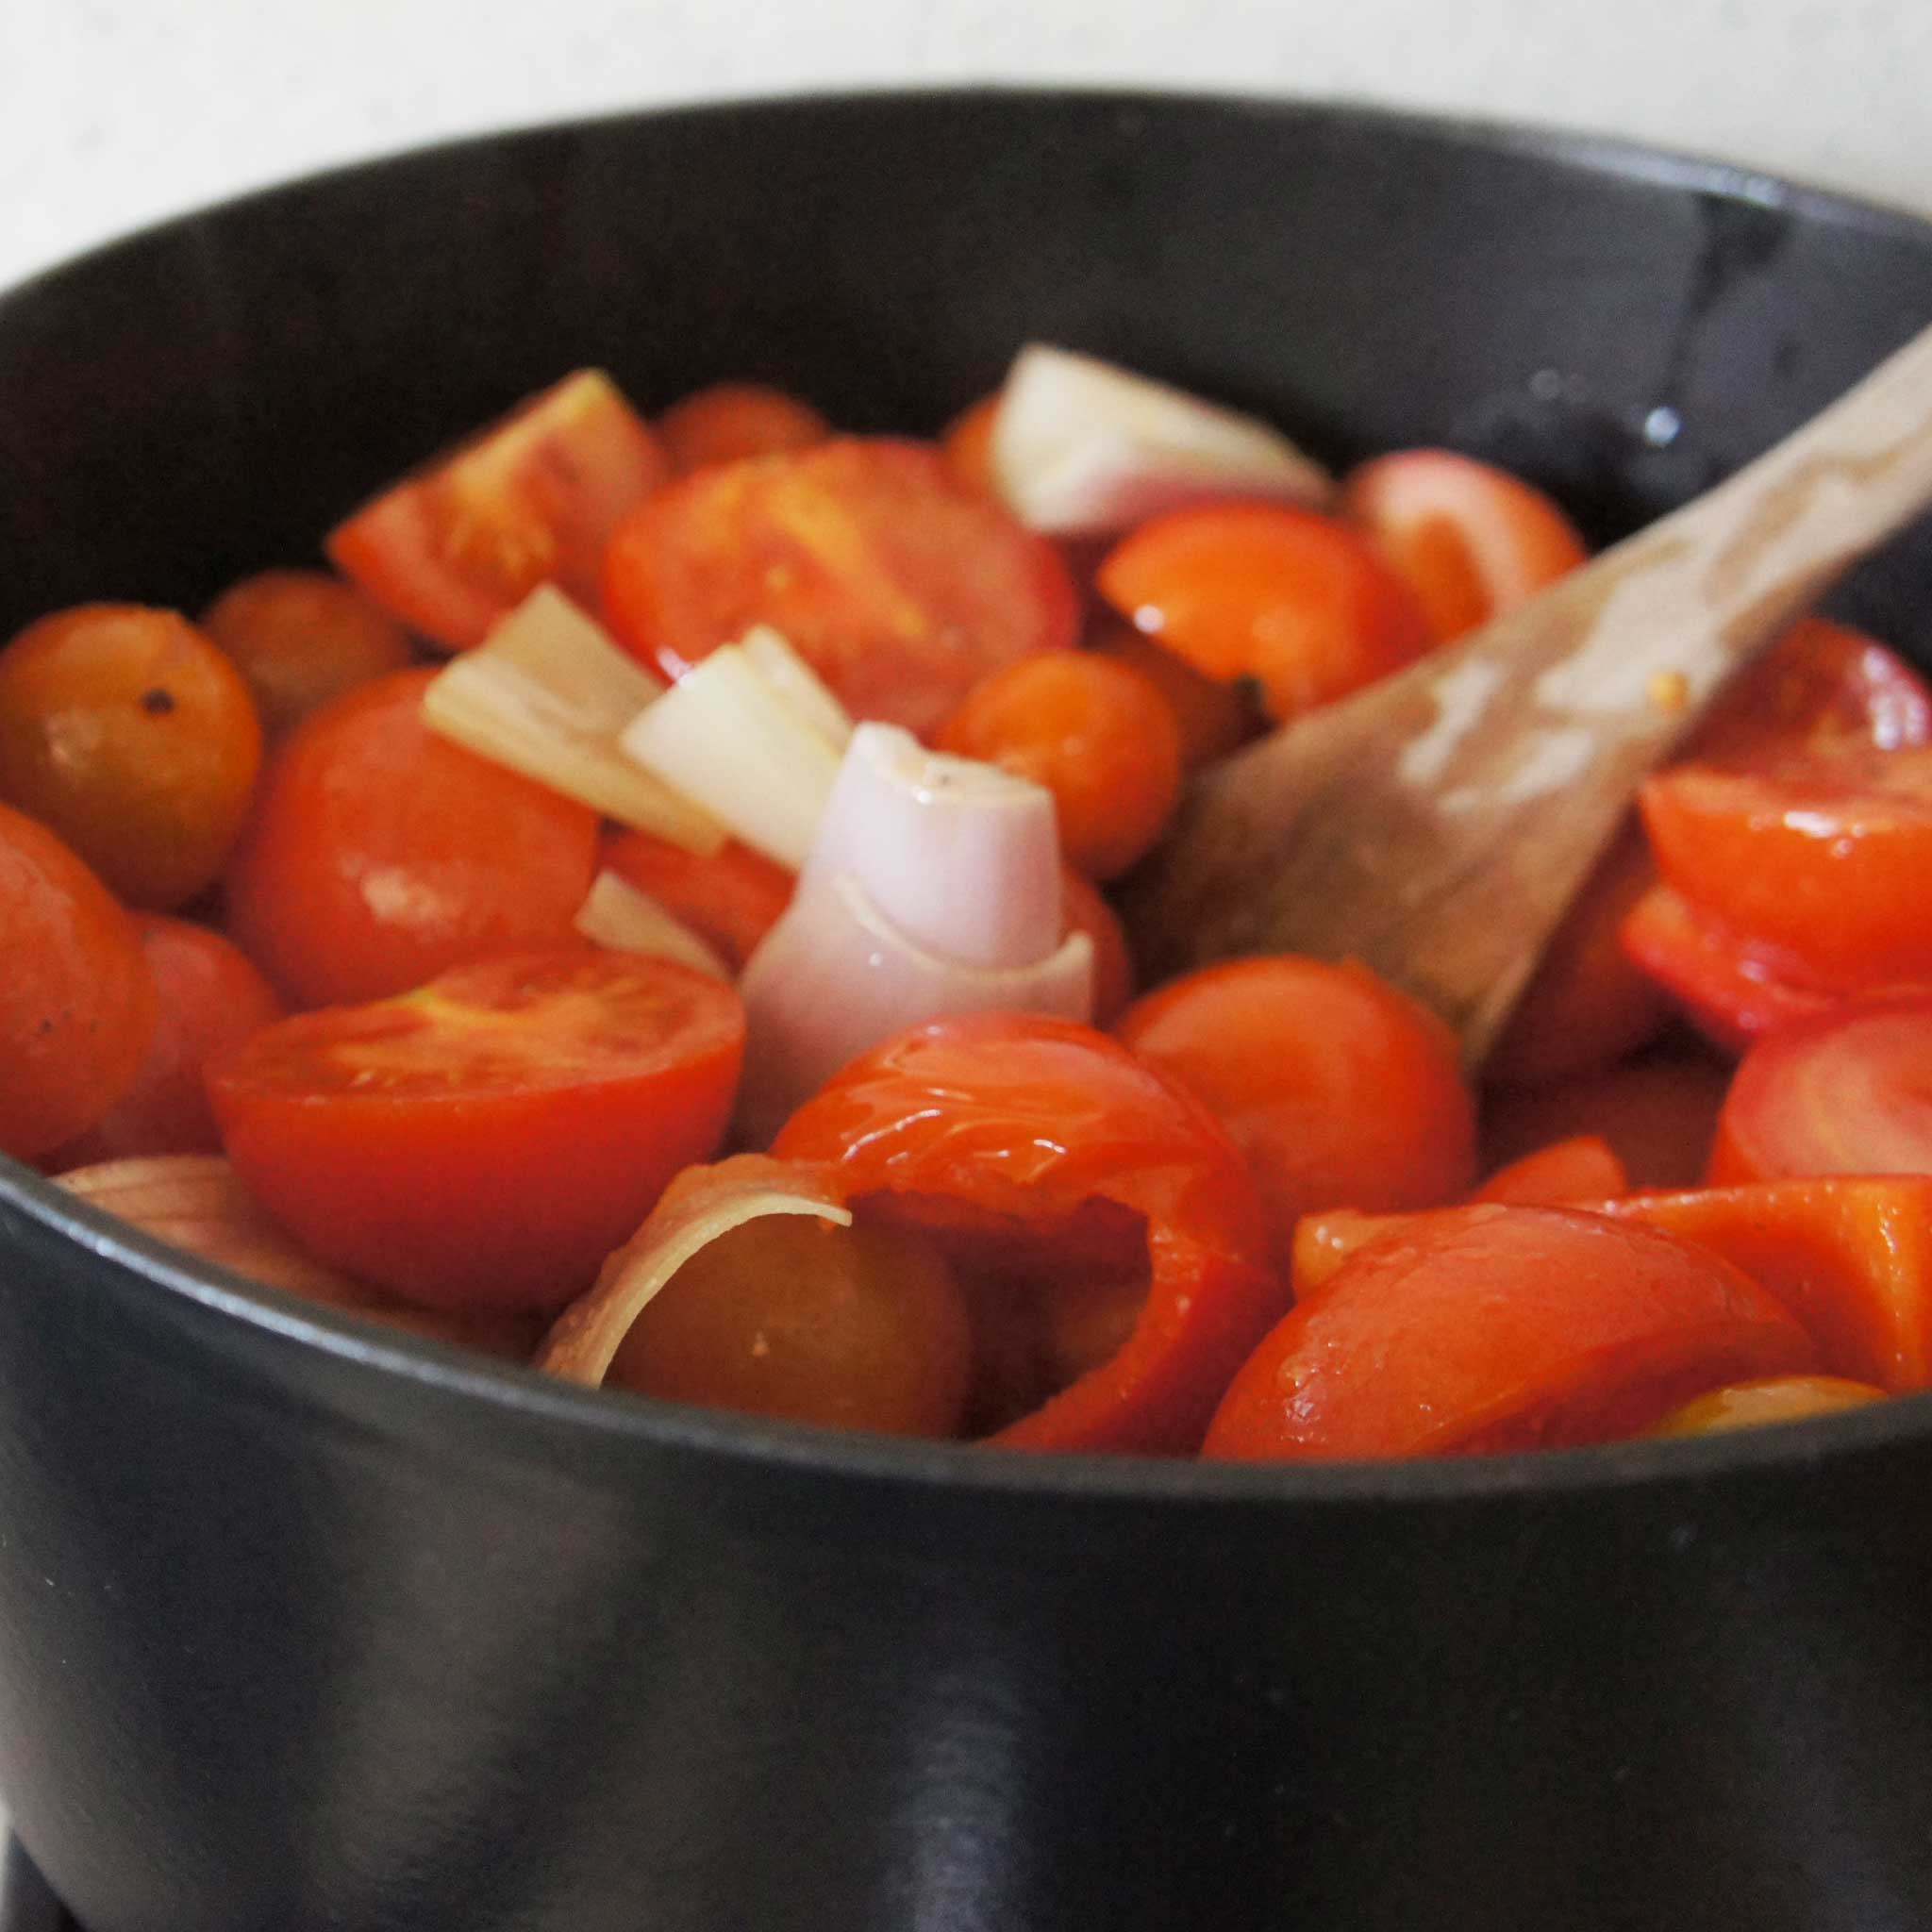 Batch-cooking tomato sauce